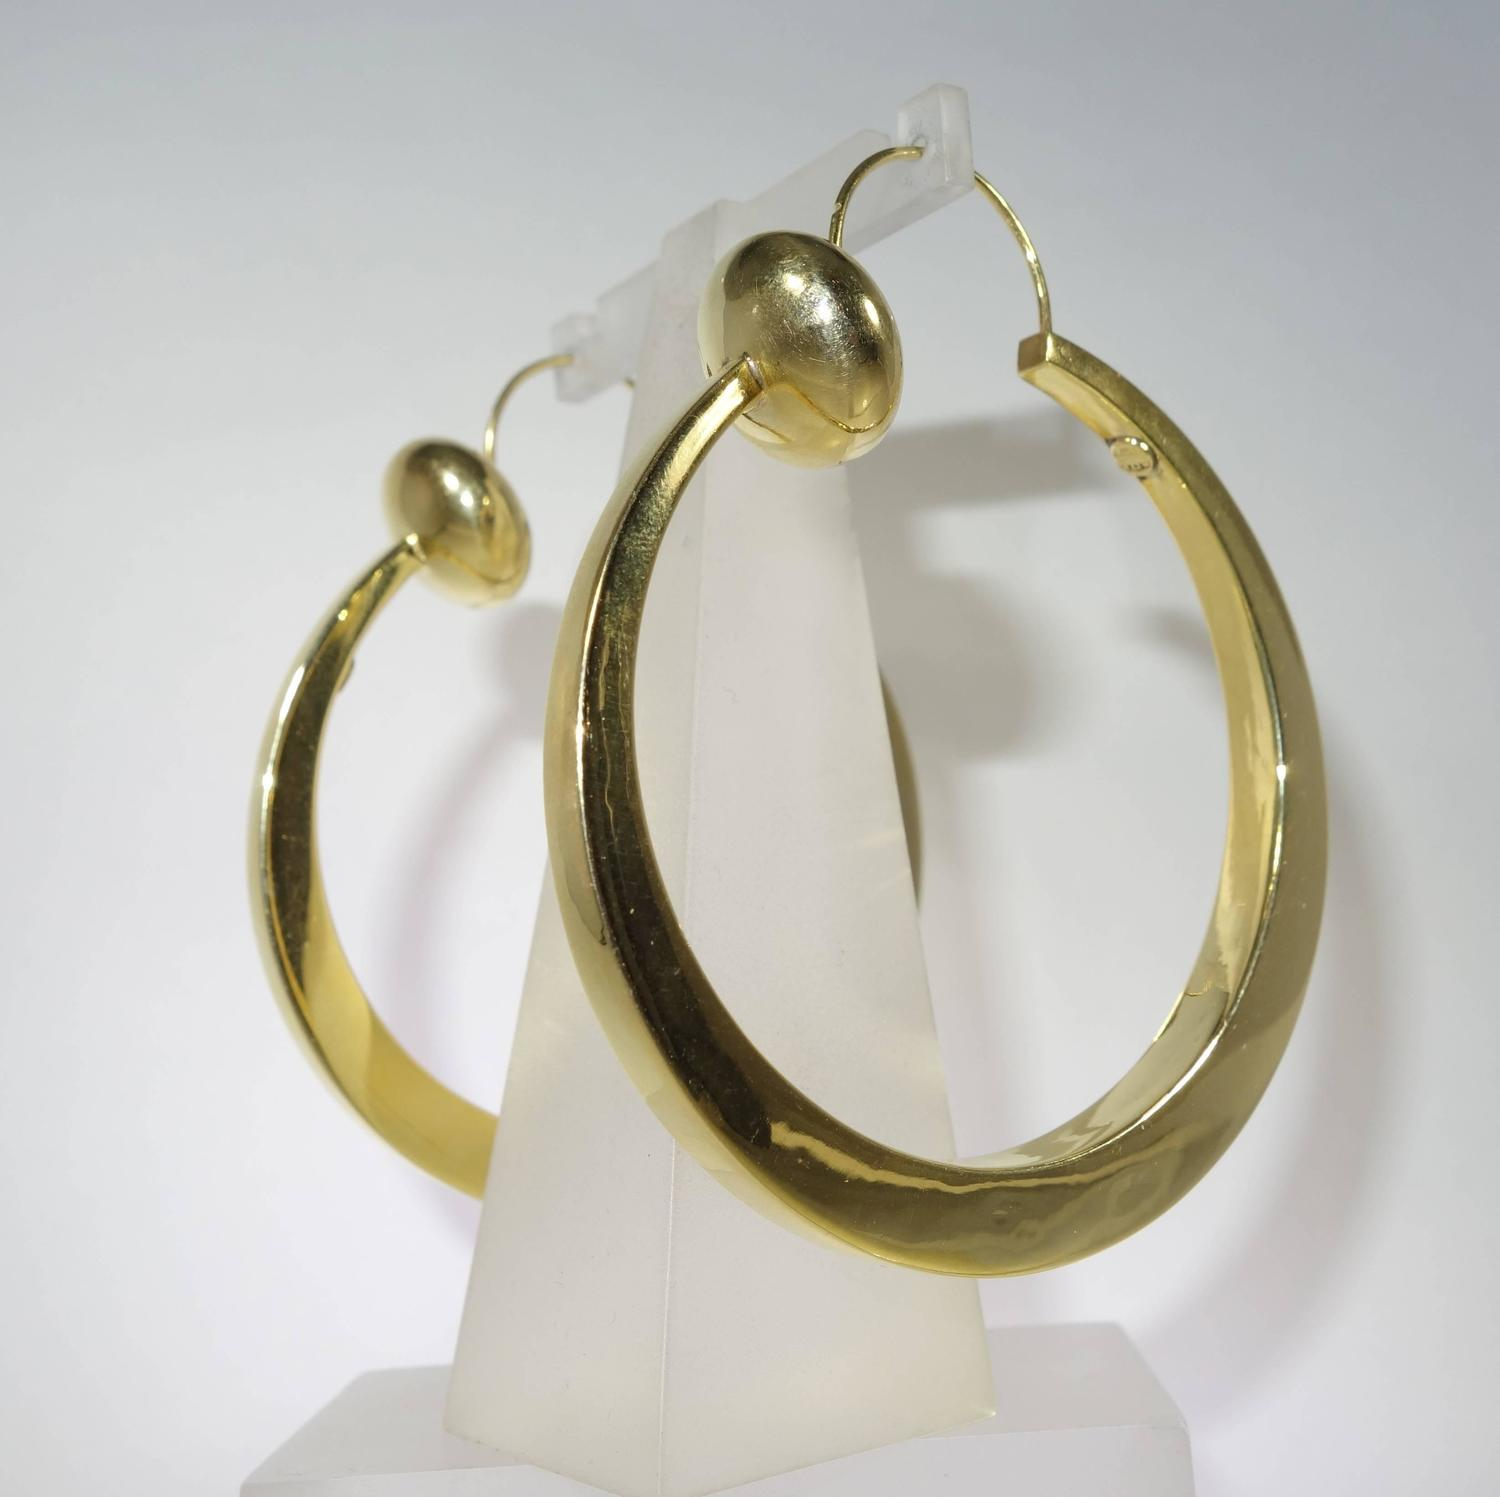 From large hoop earrings to studs and dangle earrings, Jennifer Miller has it all. Shop our exquisite line of earrings today!